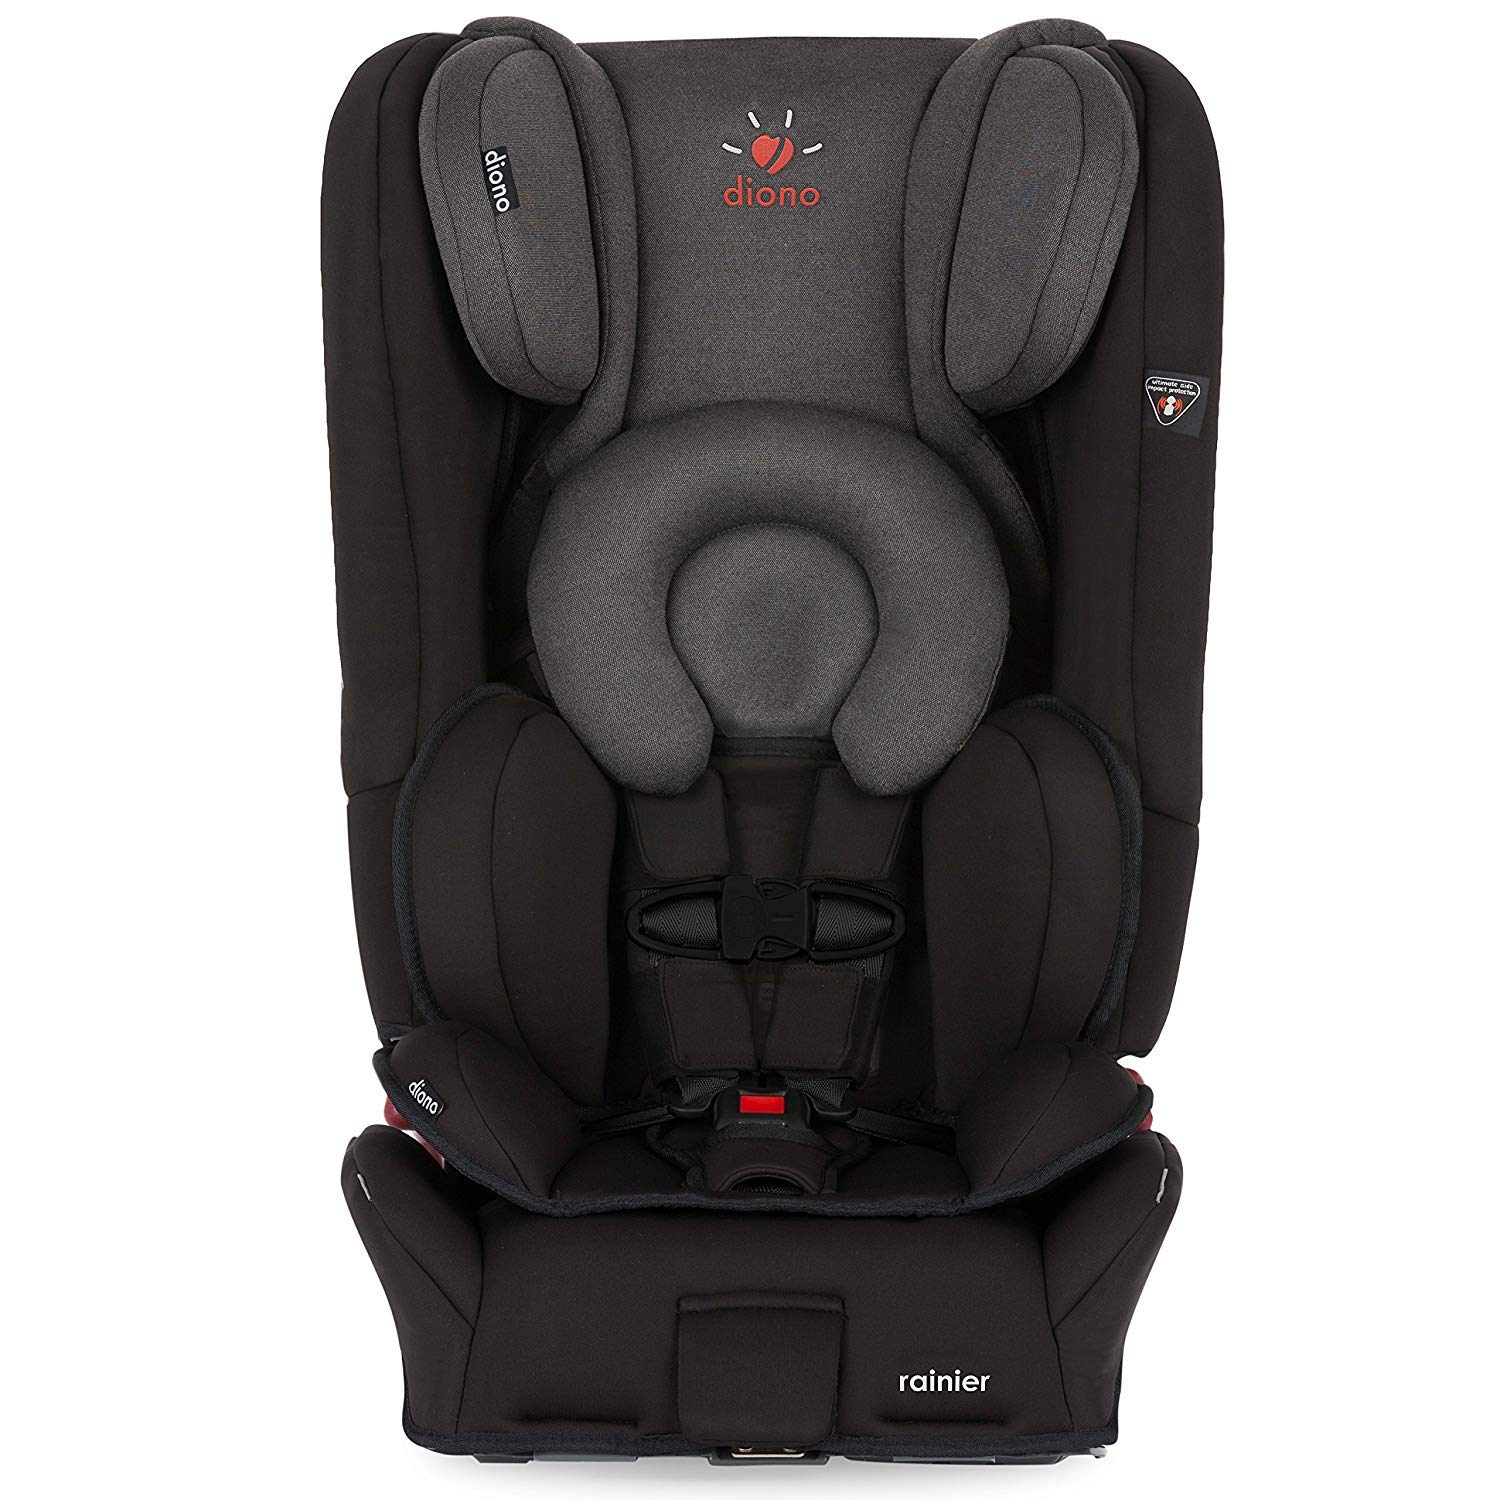 Diono Rainier All In One Convertible Car Seat Black Mist Amazonca Baby